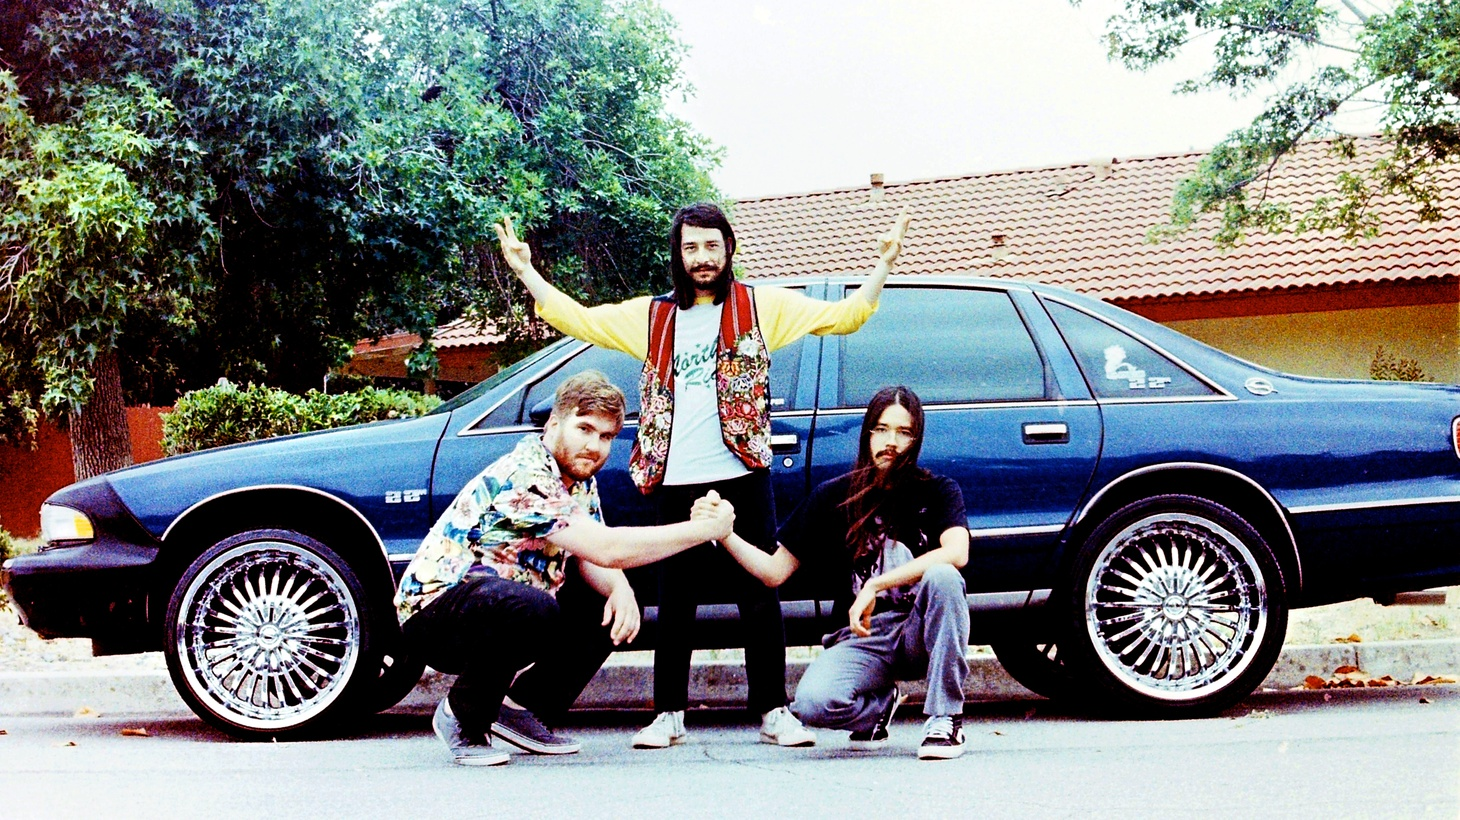 """Skateboards and punk rock fueled the trio Brainstory as they grew up in the San Bernardino Valley. Alchemists of sound, Brainstory mixes Jazz with a pinch of psychedelia and a spring of soul on """"Mnemophobia"""" or """"fear of memory."""""""